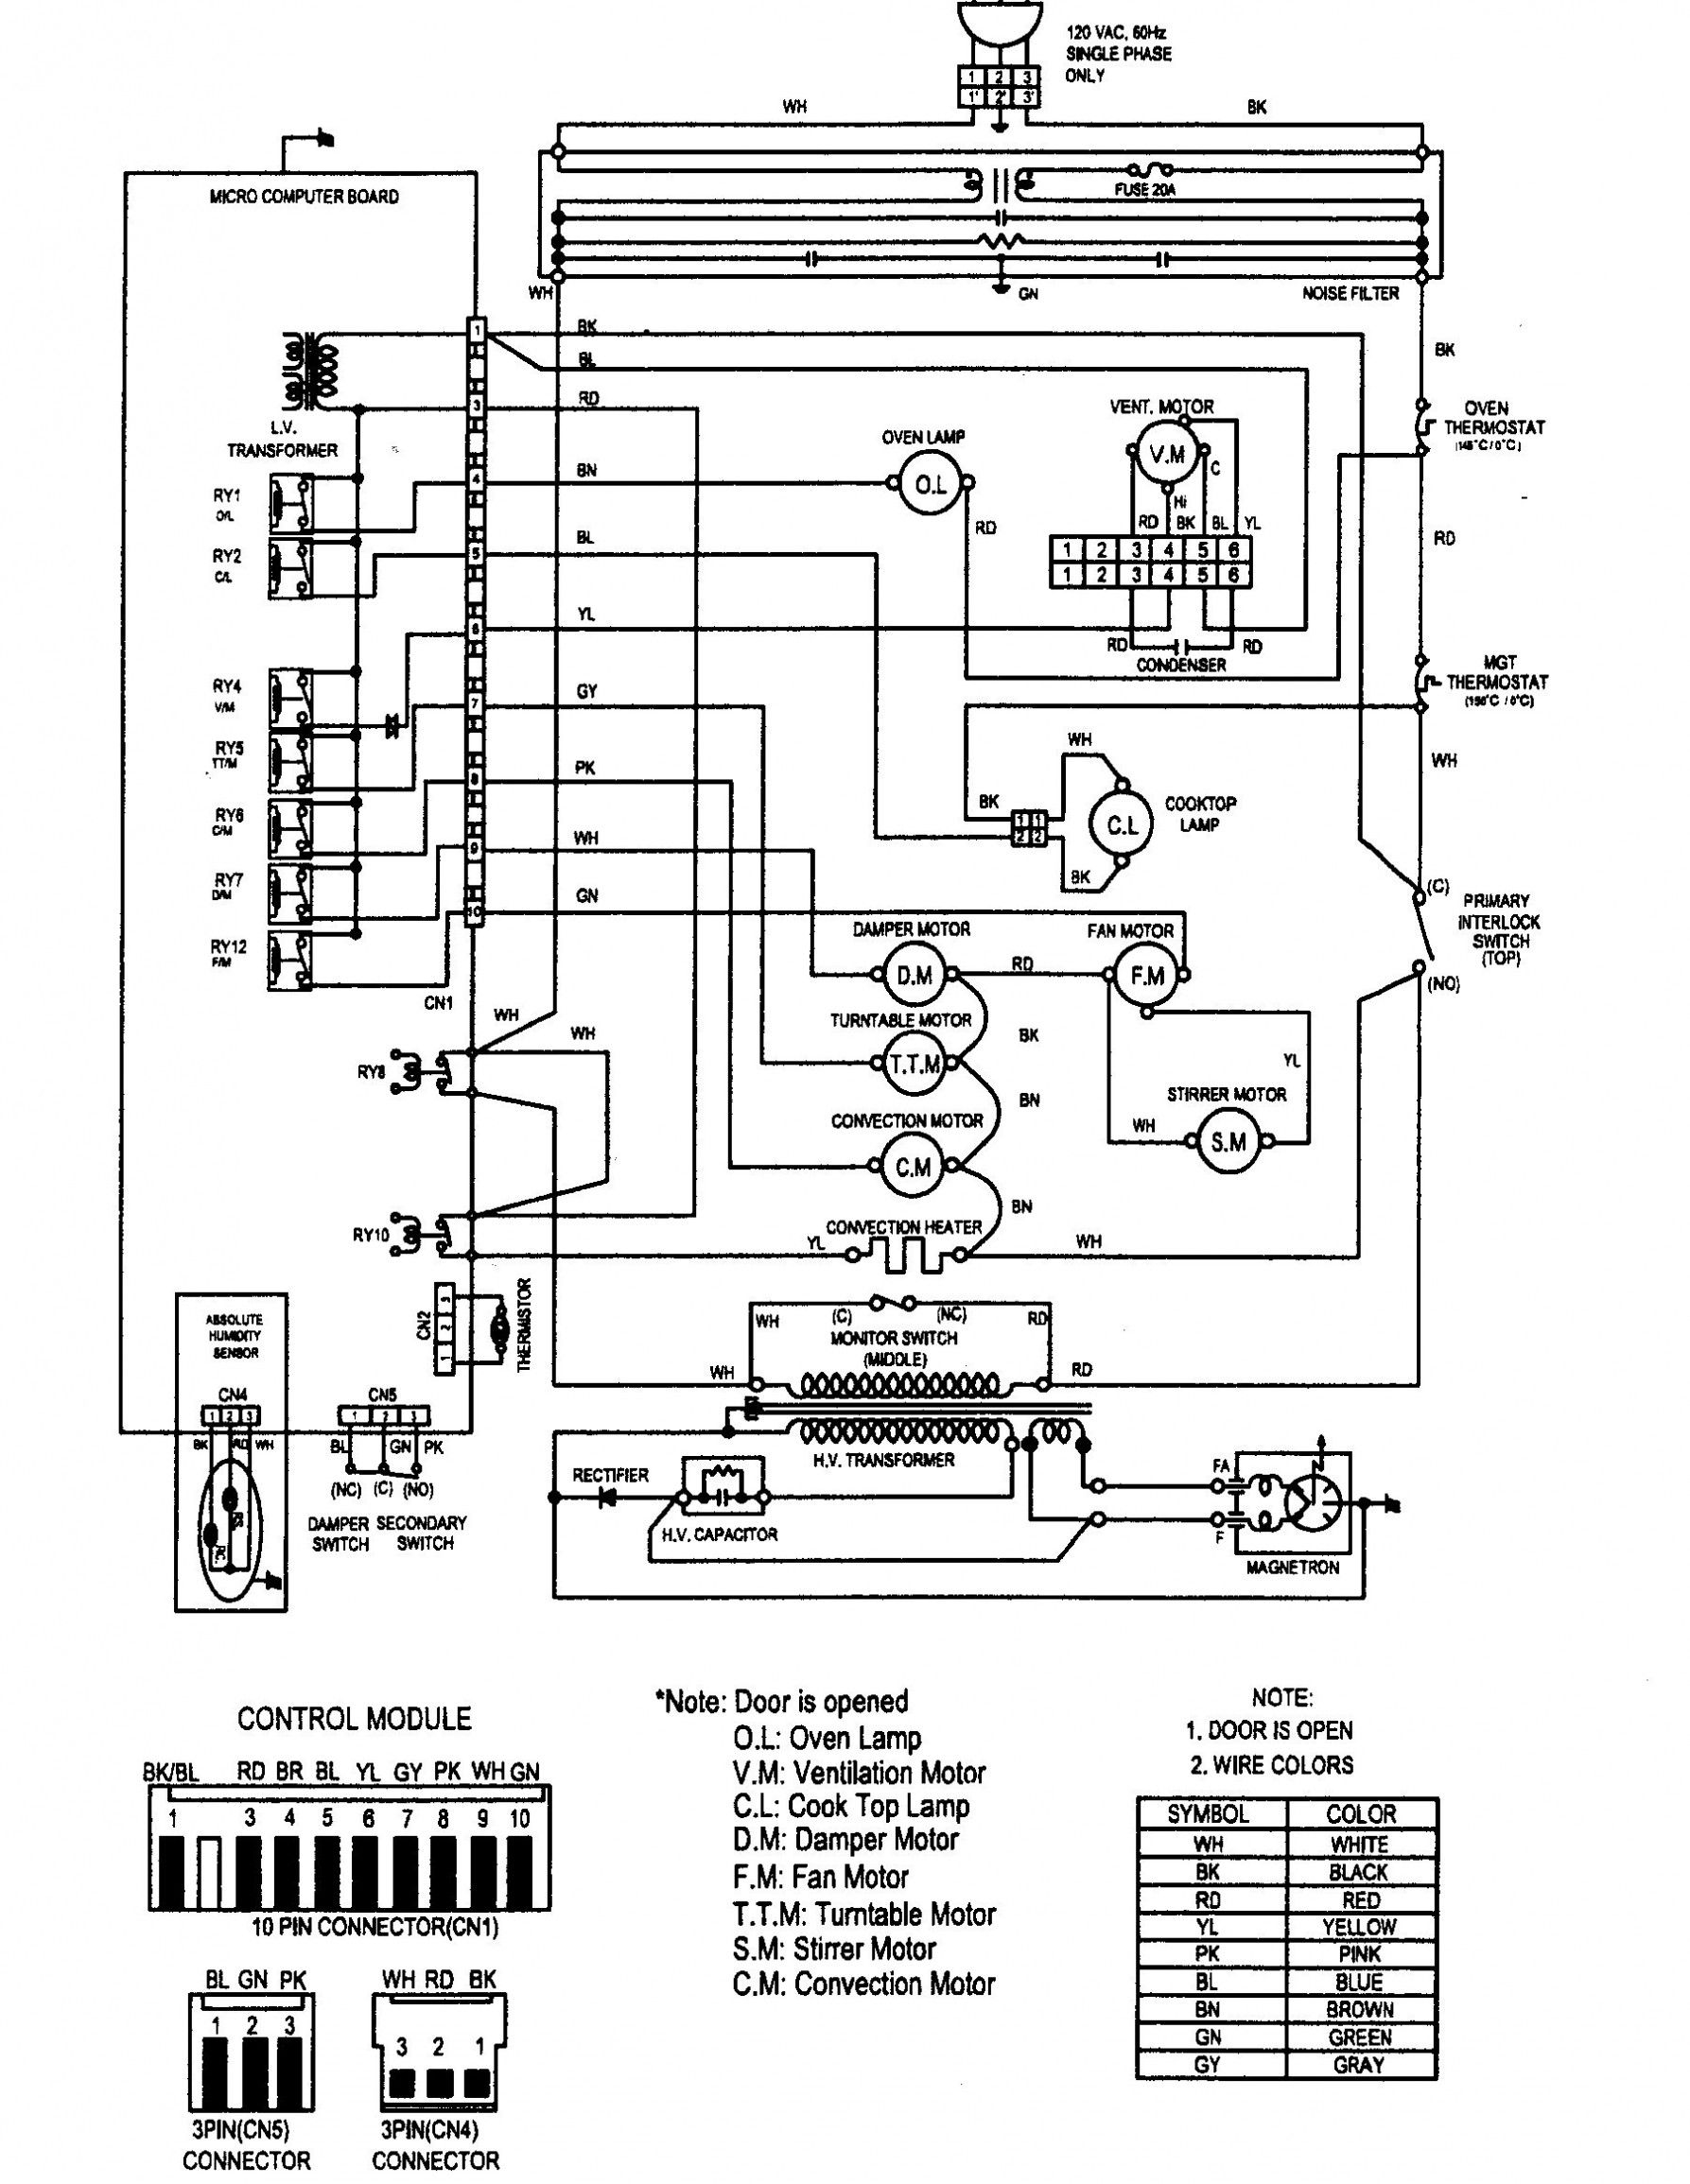 Unique Bosch Dishwasher Motor Wiring Diagram Diagram Diagramtemplate Diagramsample Check More At Https Servisi Co Bosch Dishwasher Motor Wiring Diagram